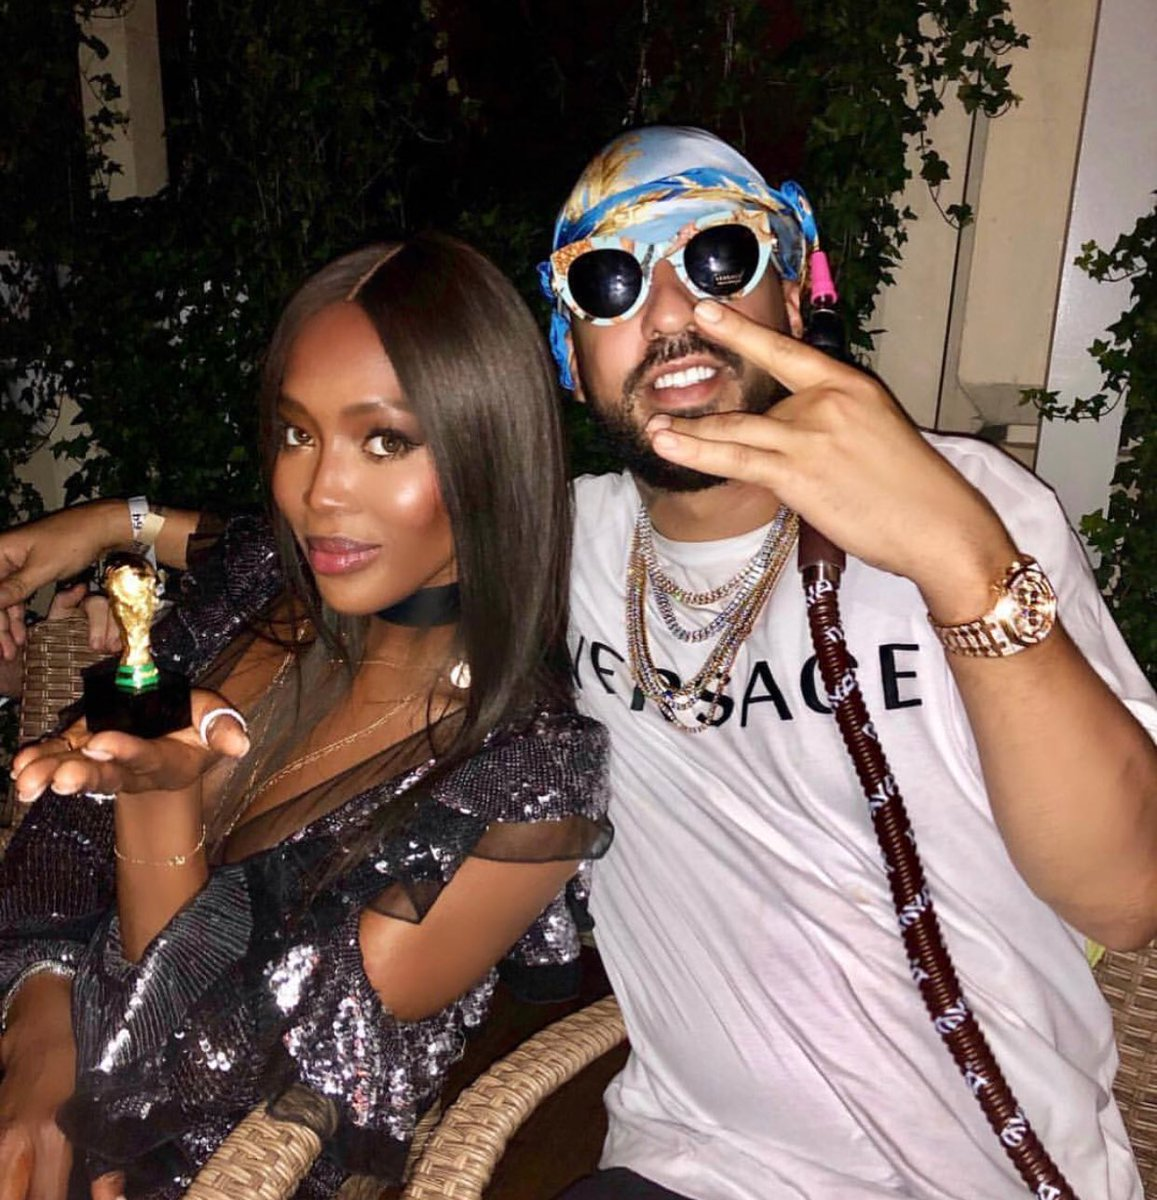 RT @FrencHMonTanA: ME AND THE AFRICAN QUEEN @NaomiCampbell SOME WHERE IN RUSSIA CELEBRATING LIFE ❤️ #worldcup2018 https://t.co/vlHkMf2z0D